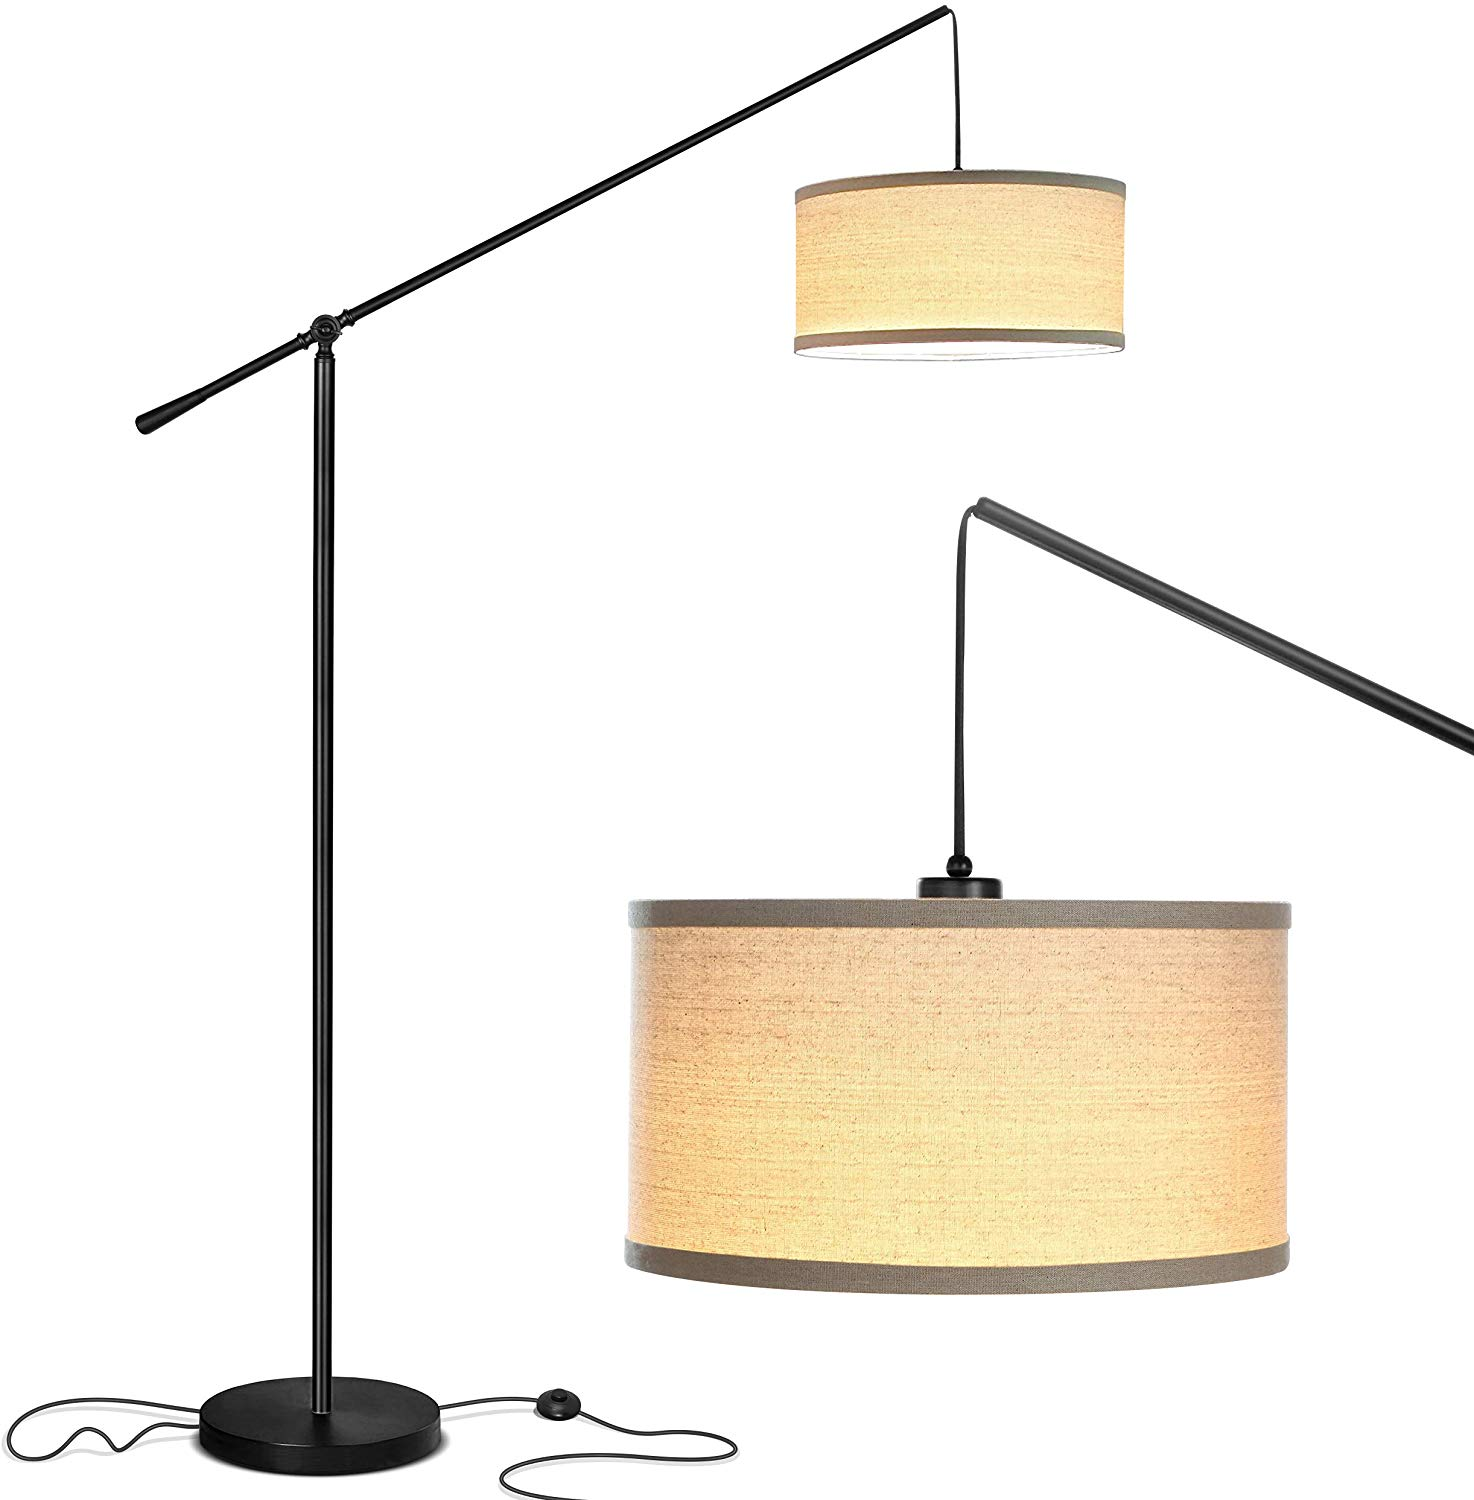 Brightech Hudson 2 - Contemporary Arc Floor Lamp Stands Up Over the Couch From Behind